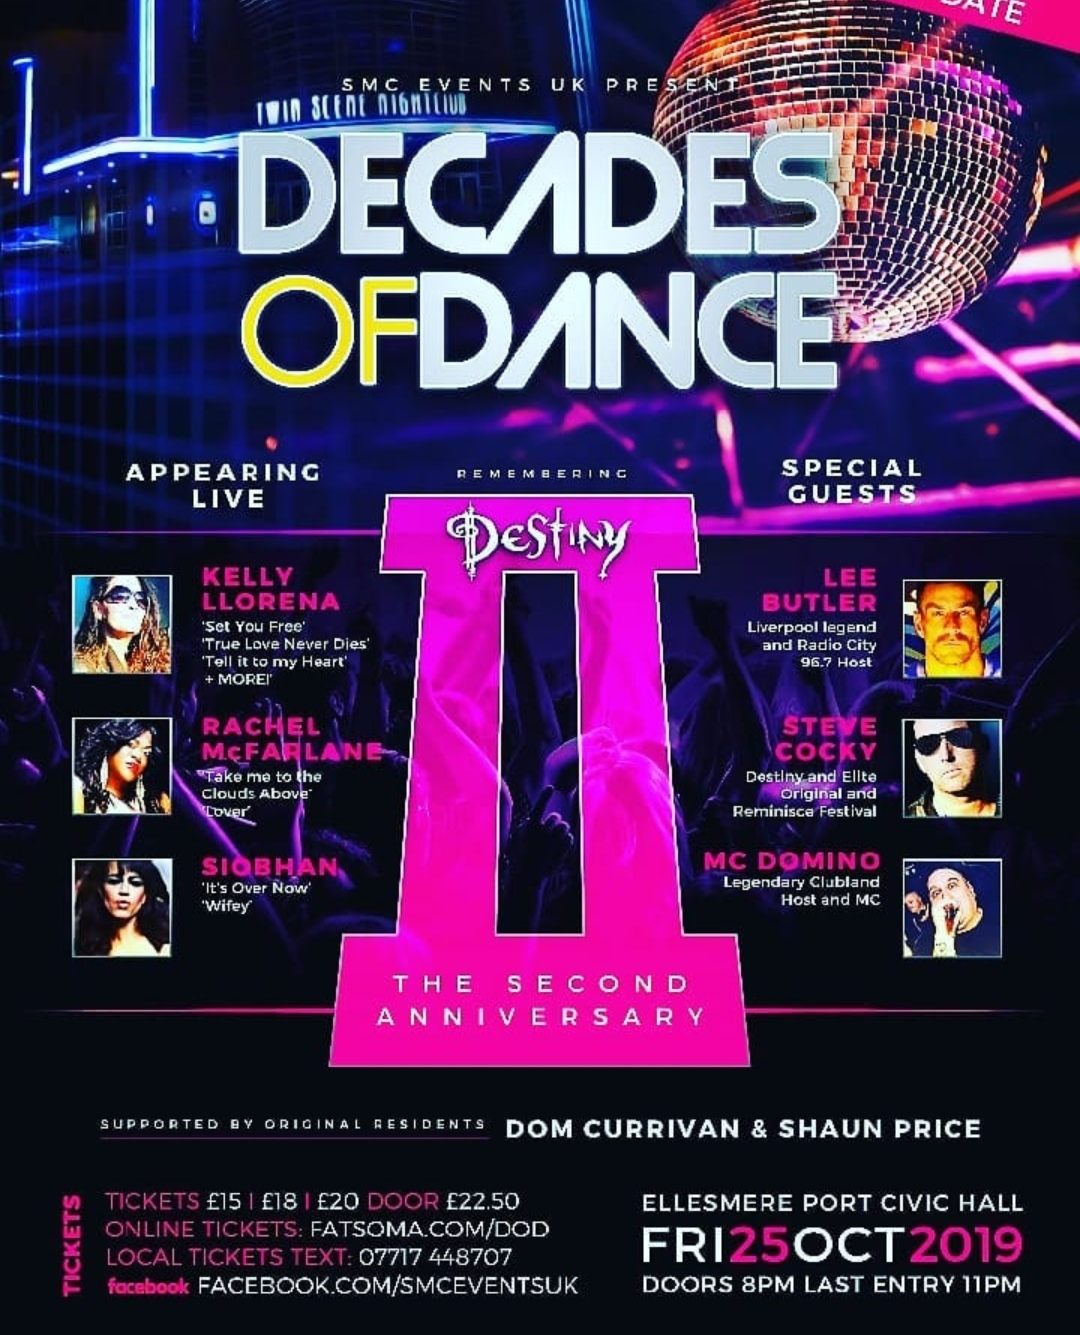 Decades of dance 2 Ellesmere port